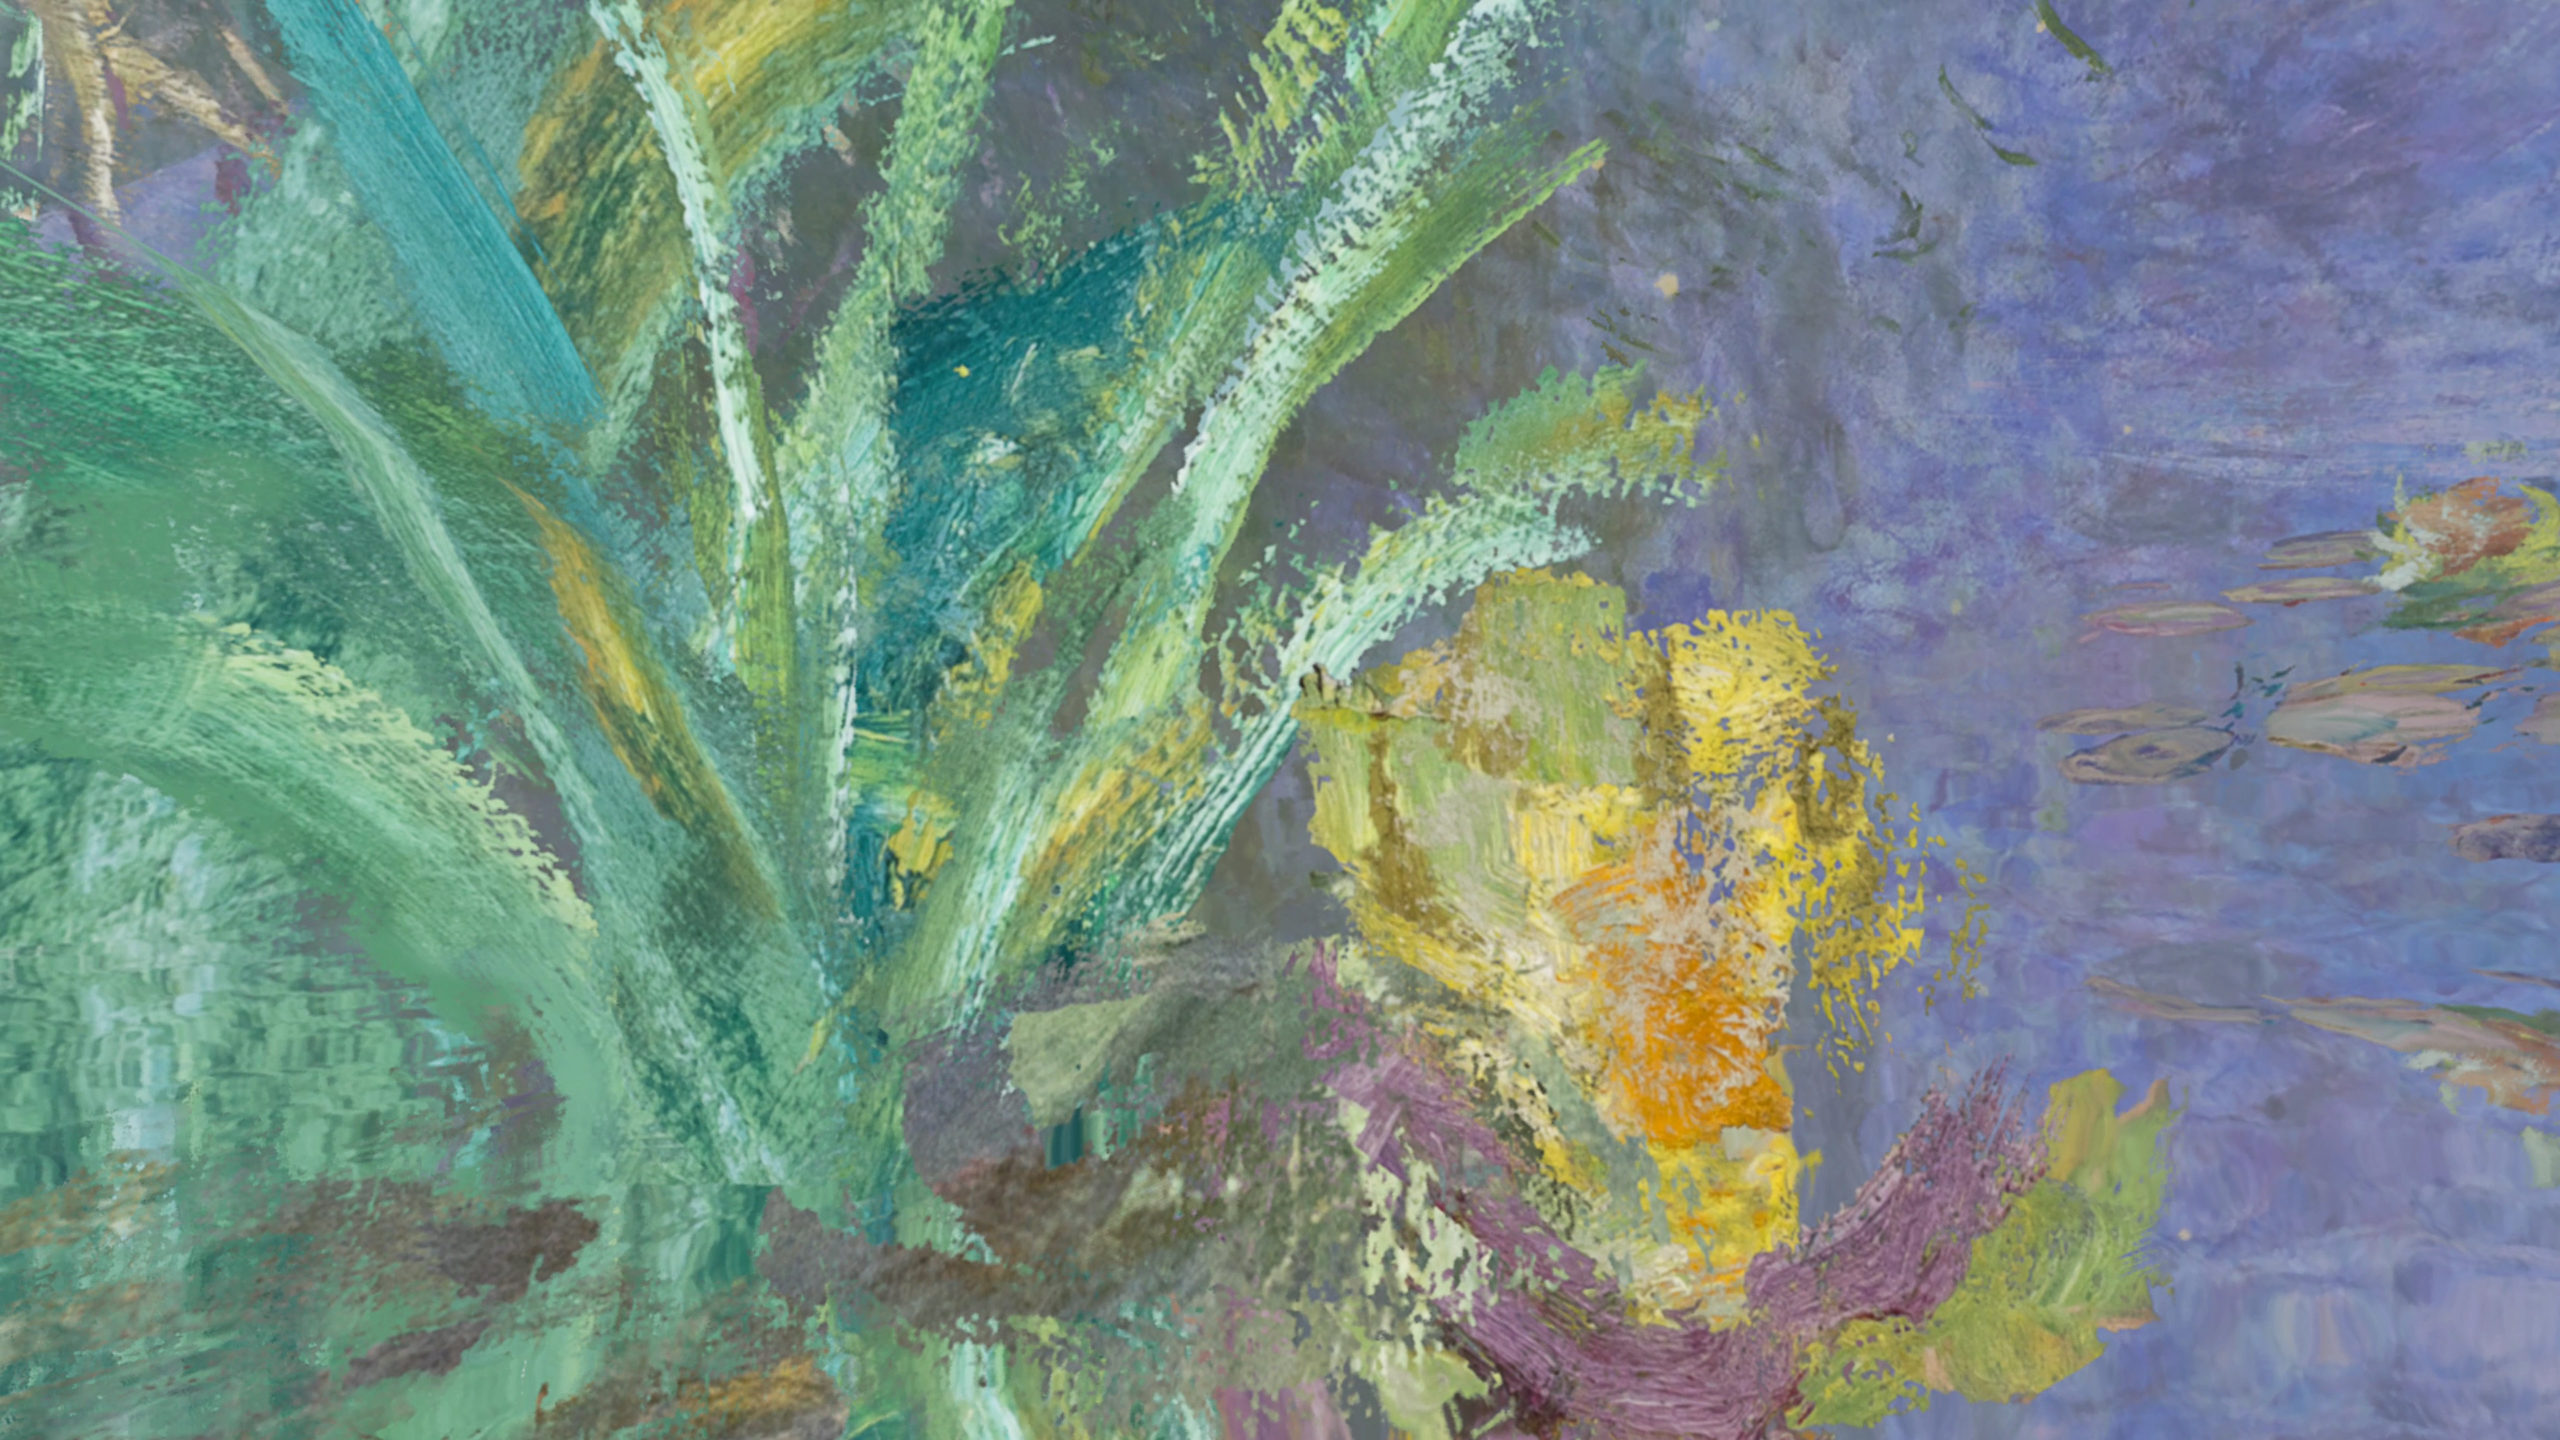 Claude Monet - The Water Lily obsession